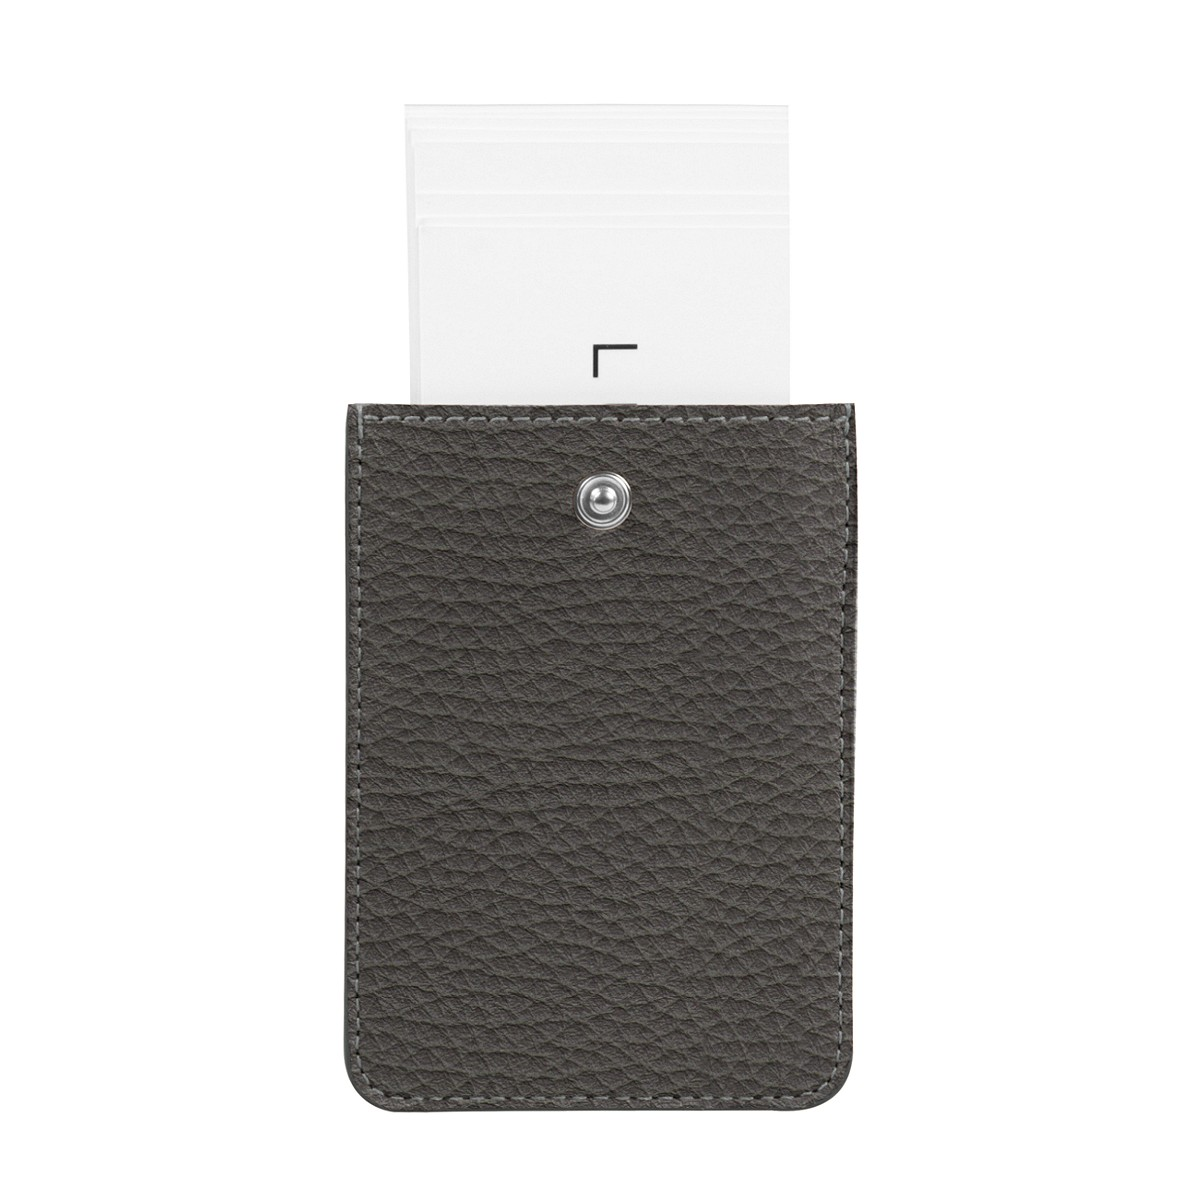 Business card holder with tab closure